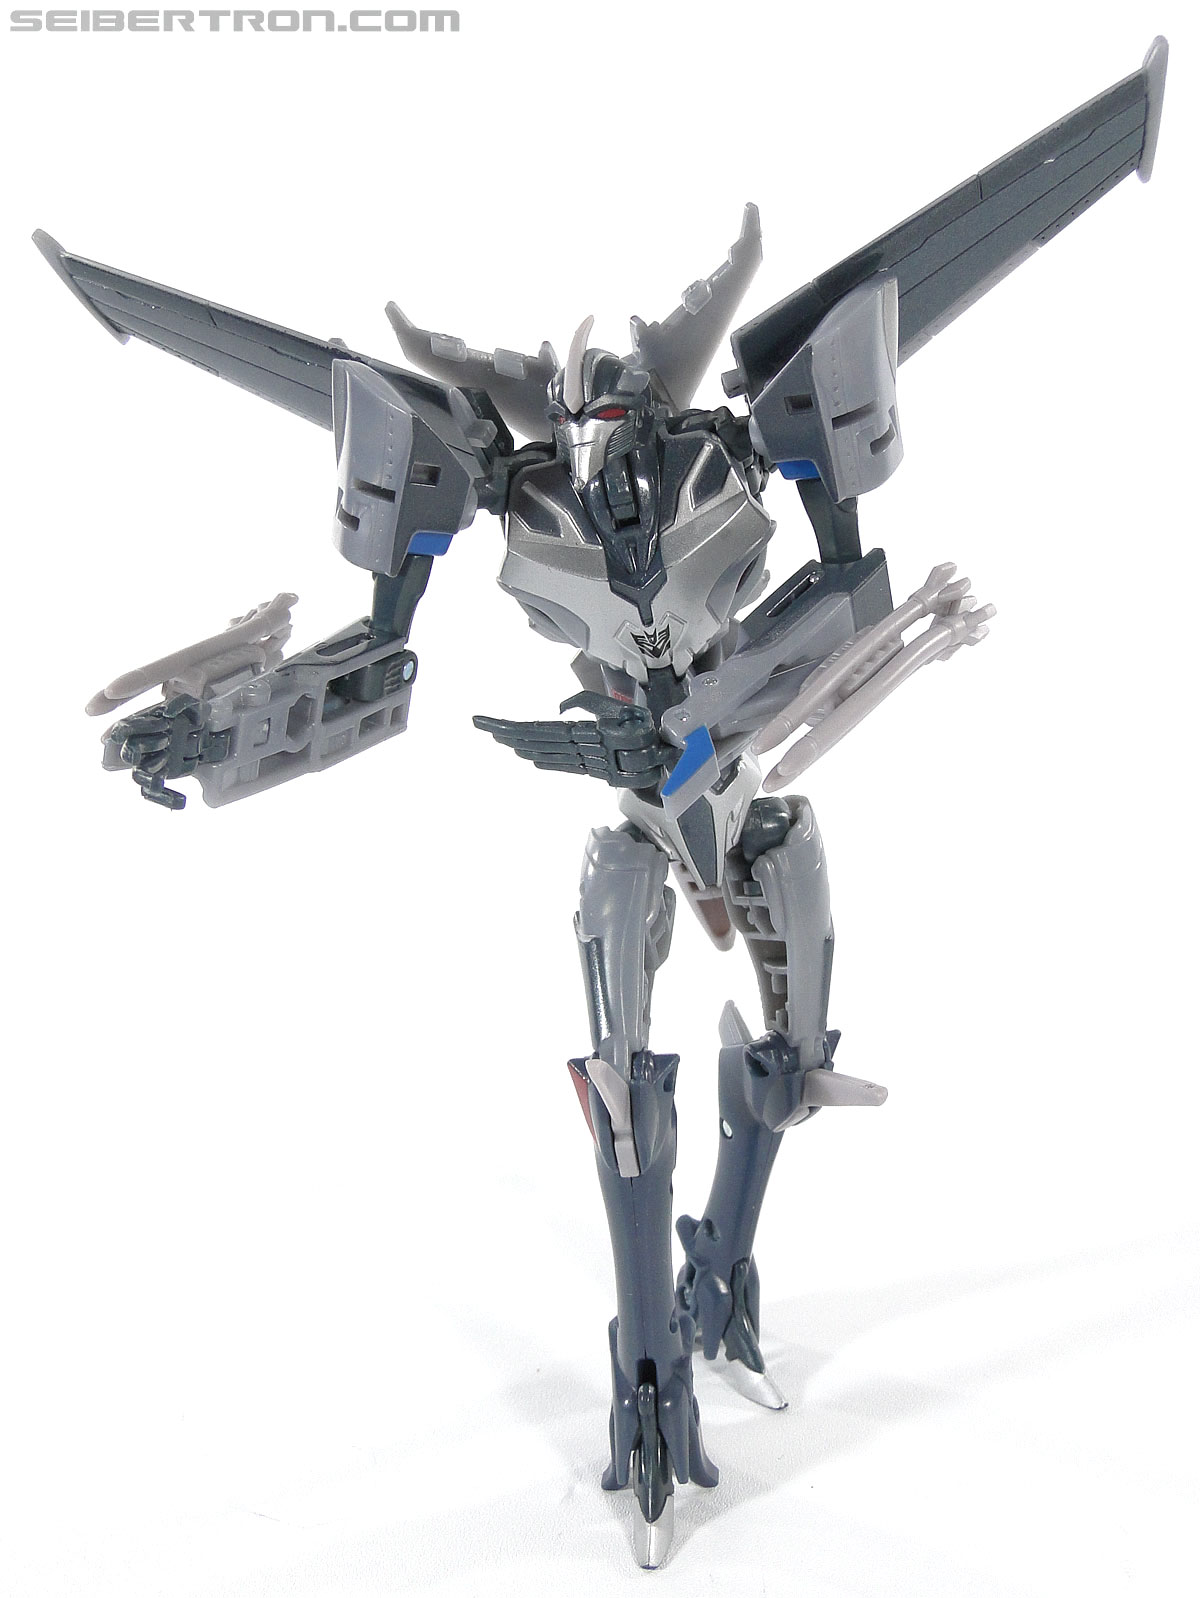 Transformers Prime: First Edition Starscream (Image #97 of 136)